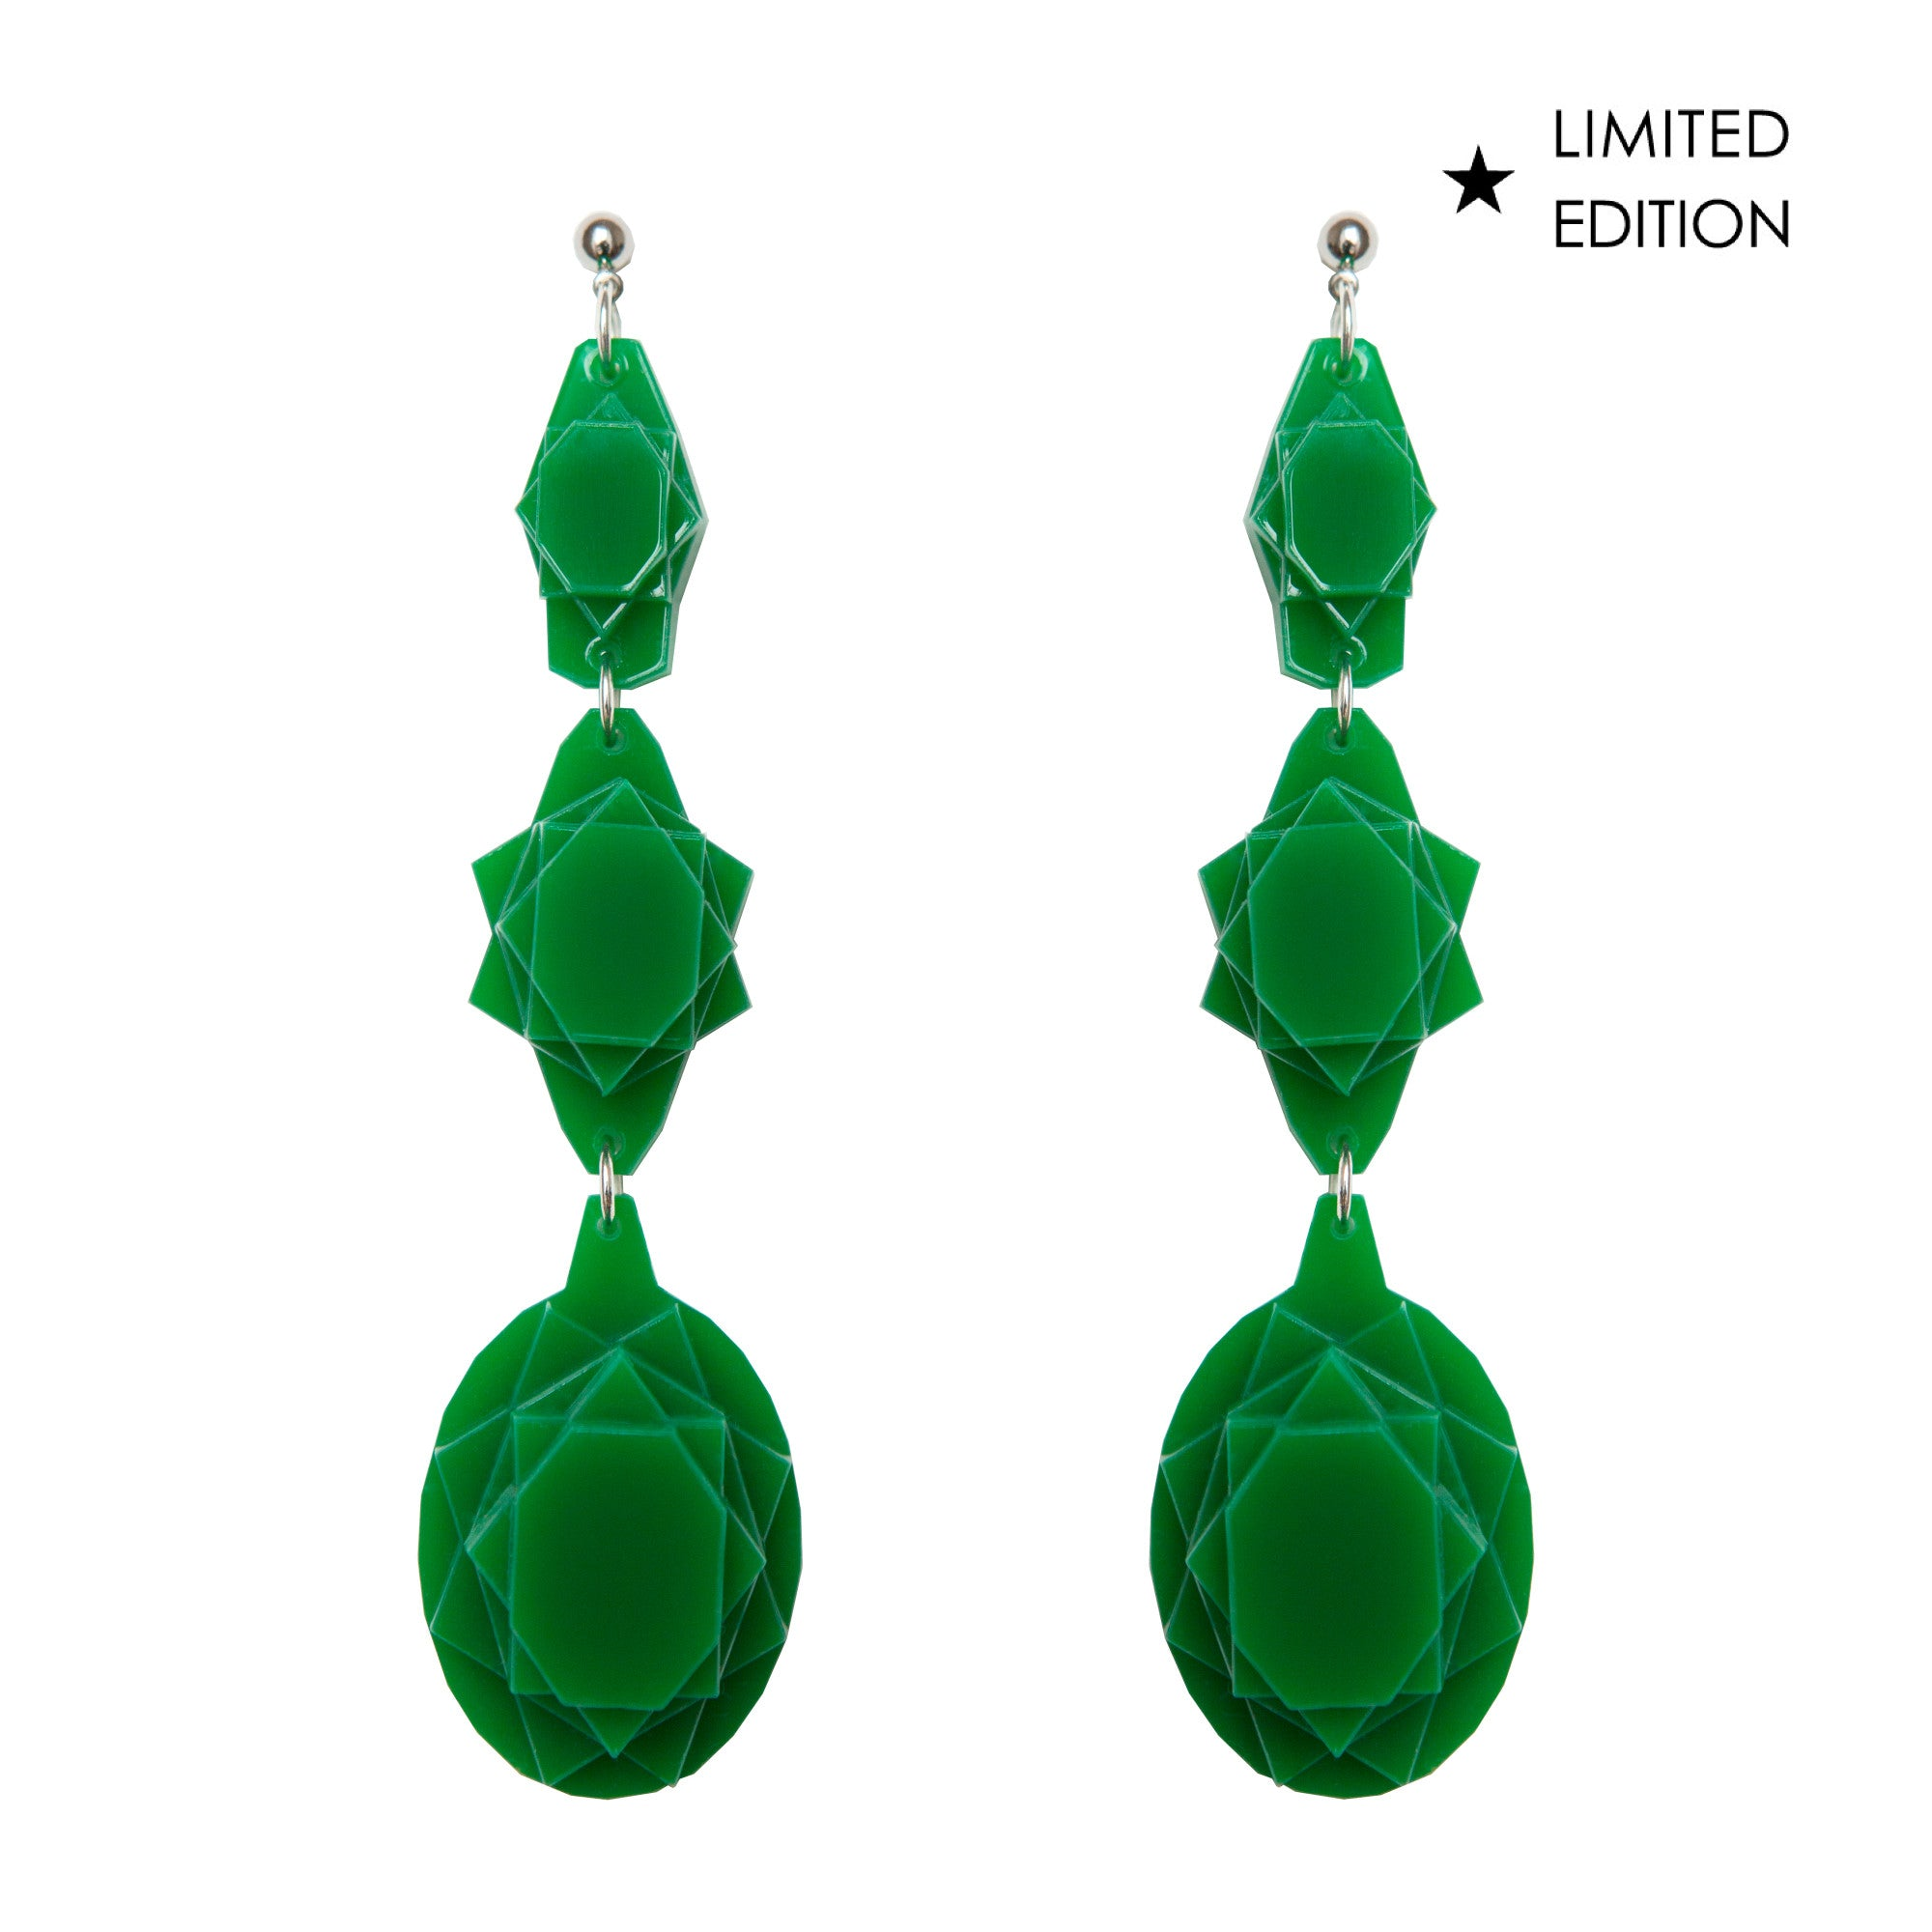 VECTORY OVAL JADE EARRINGS